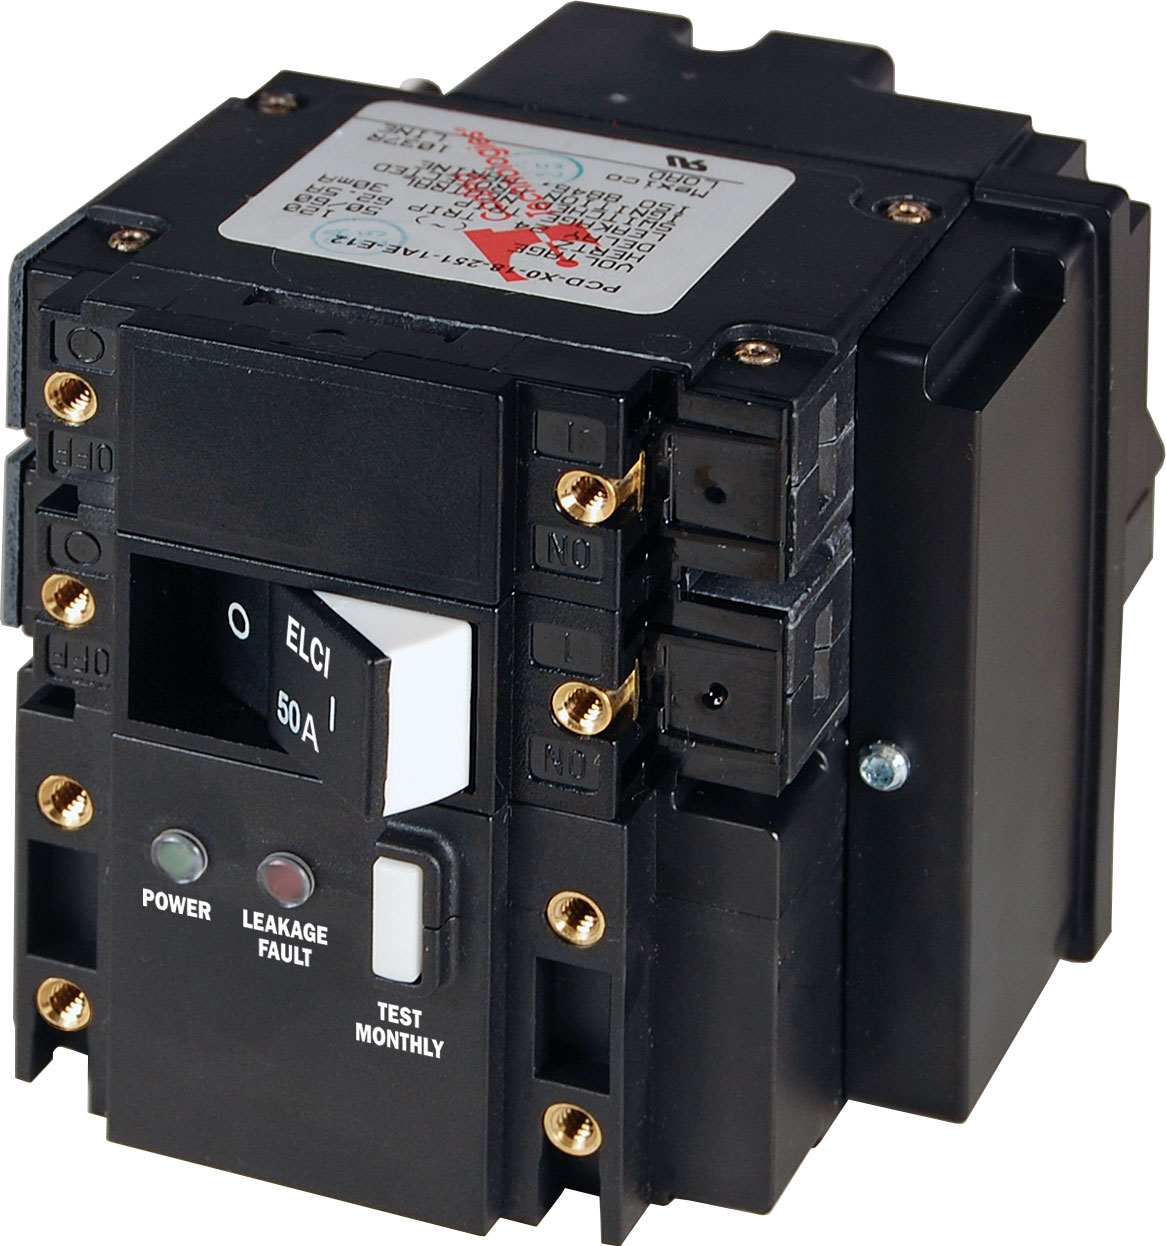 C Series Elci Circuit Breaker Double Pole 240v Ac 50a Blue Sea Switch Wiring Diagram Product Image